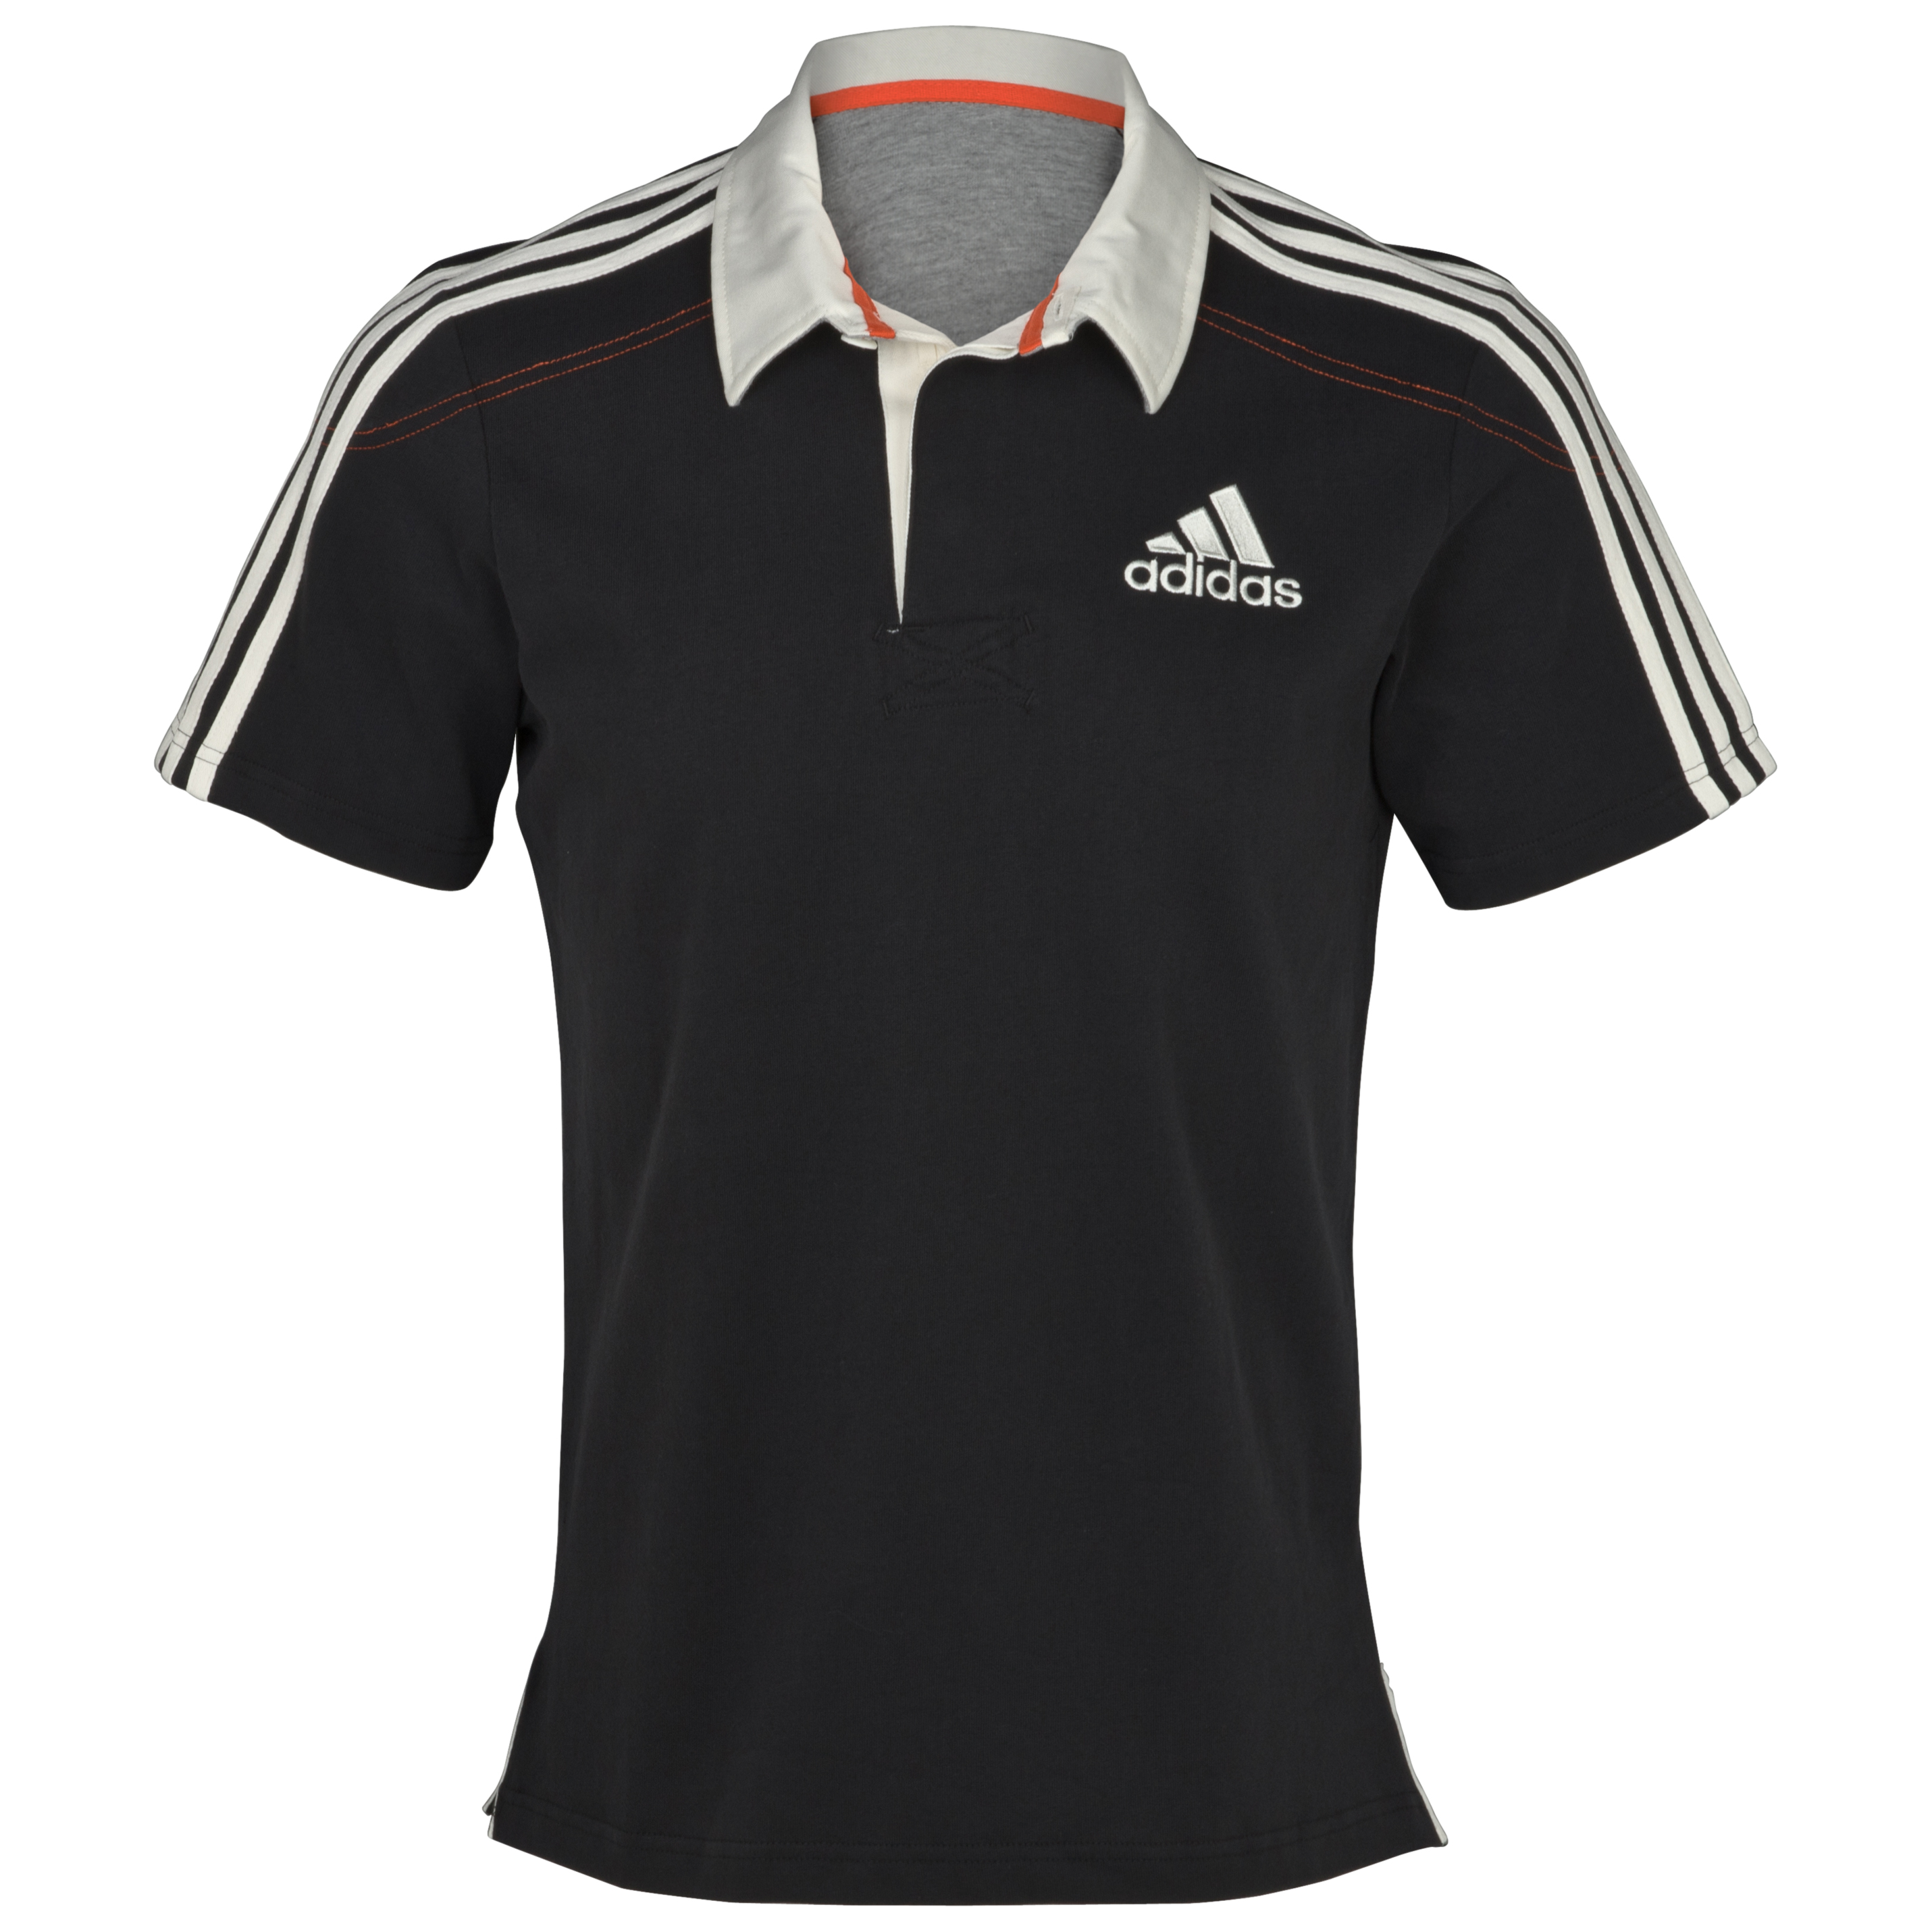 adidas Essentials  Short Sleeve Rugby Jersey - Black/Spray